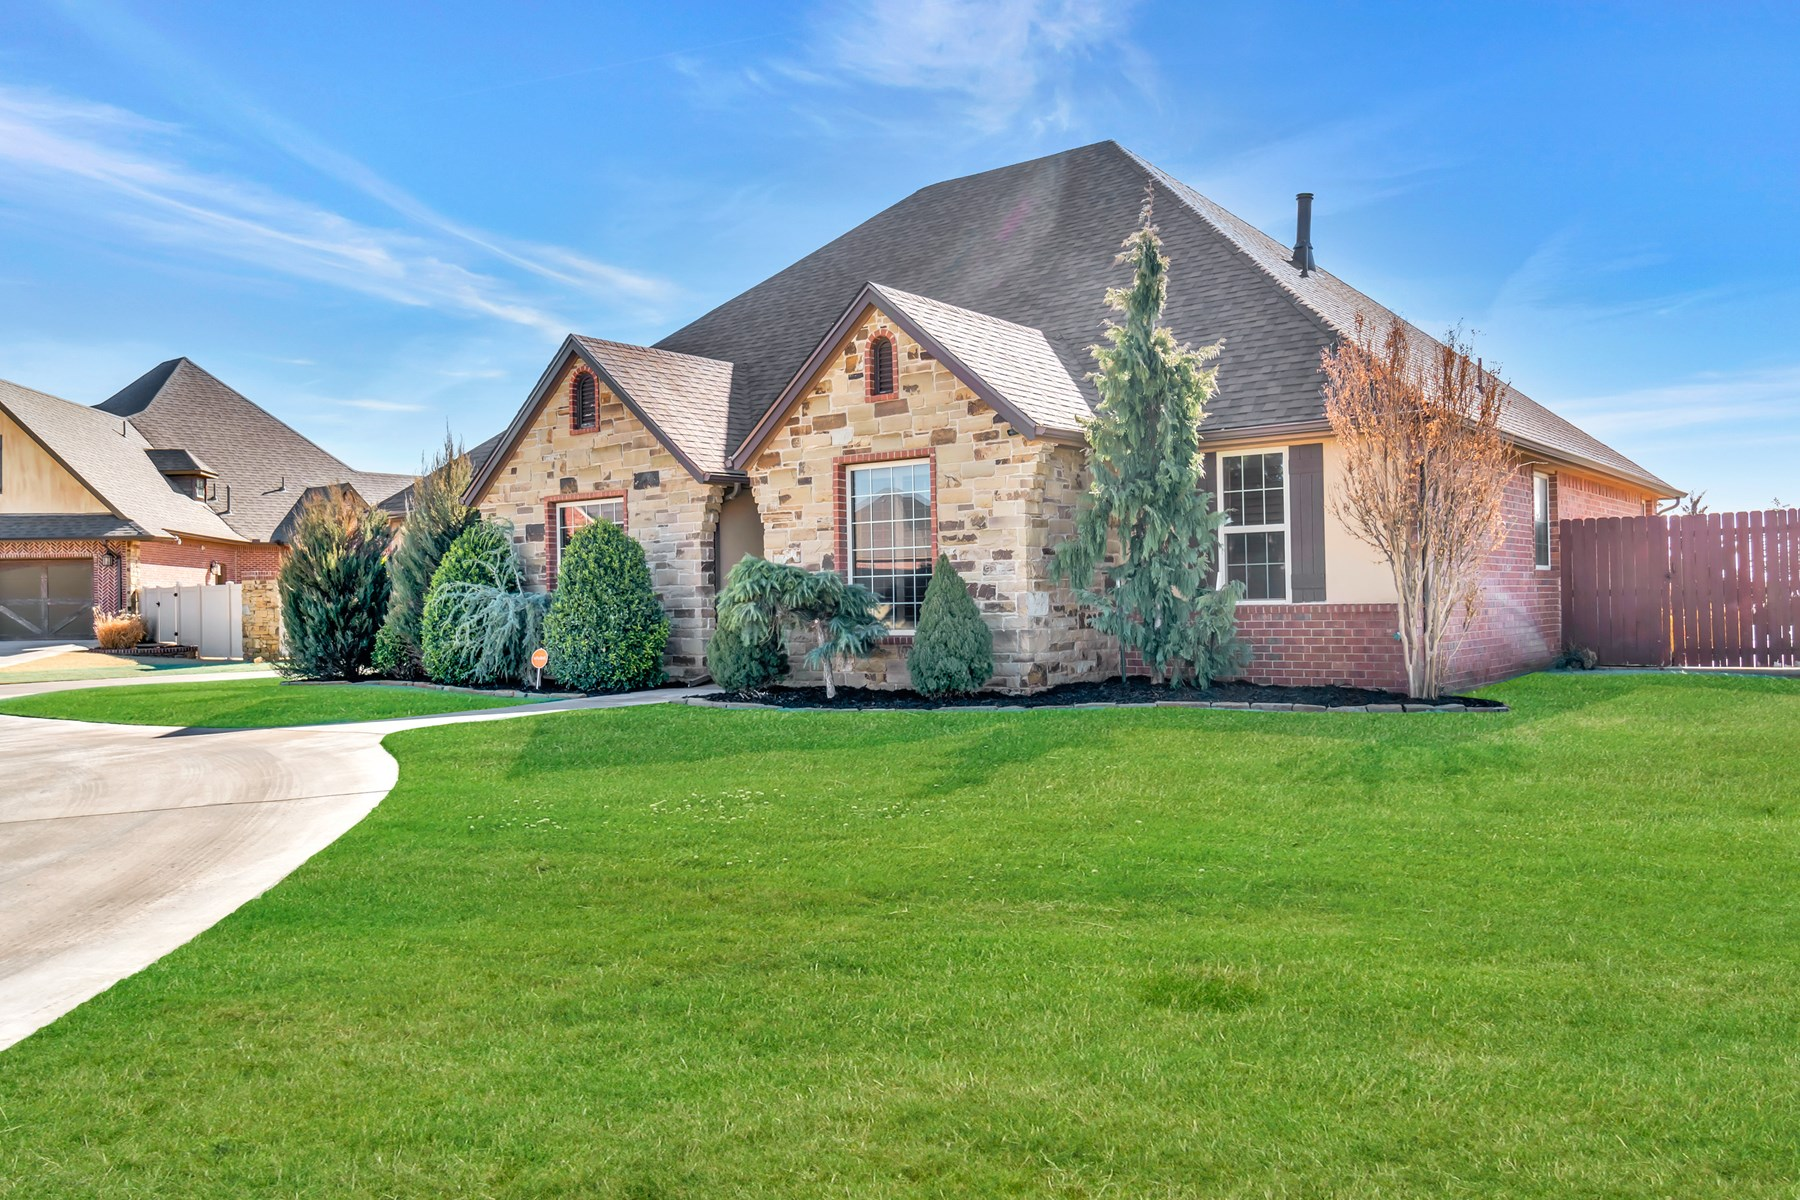 CORNER LOT HOME IN ELK CITY WITH A POOL